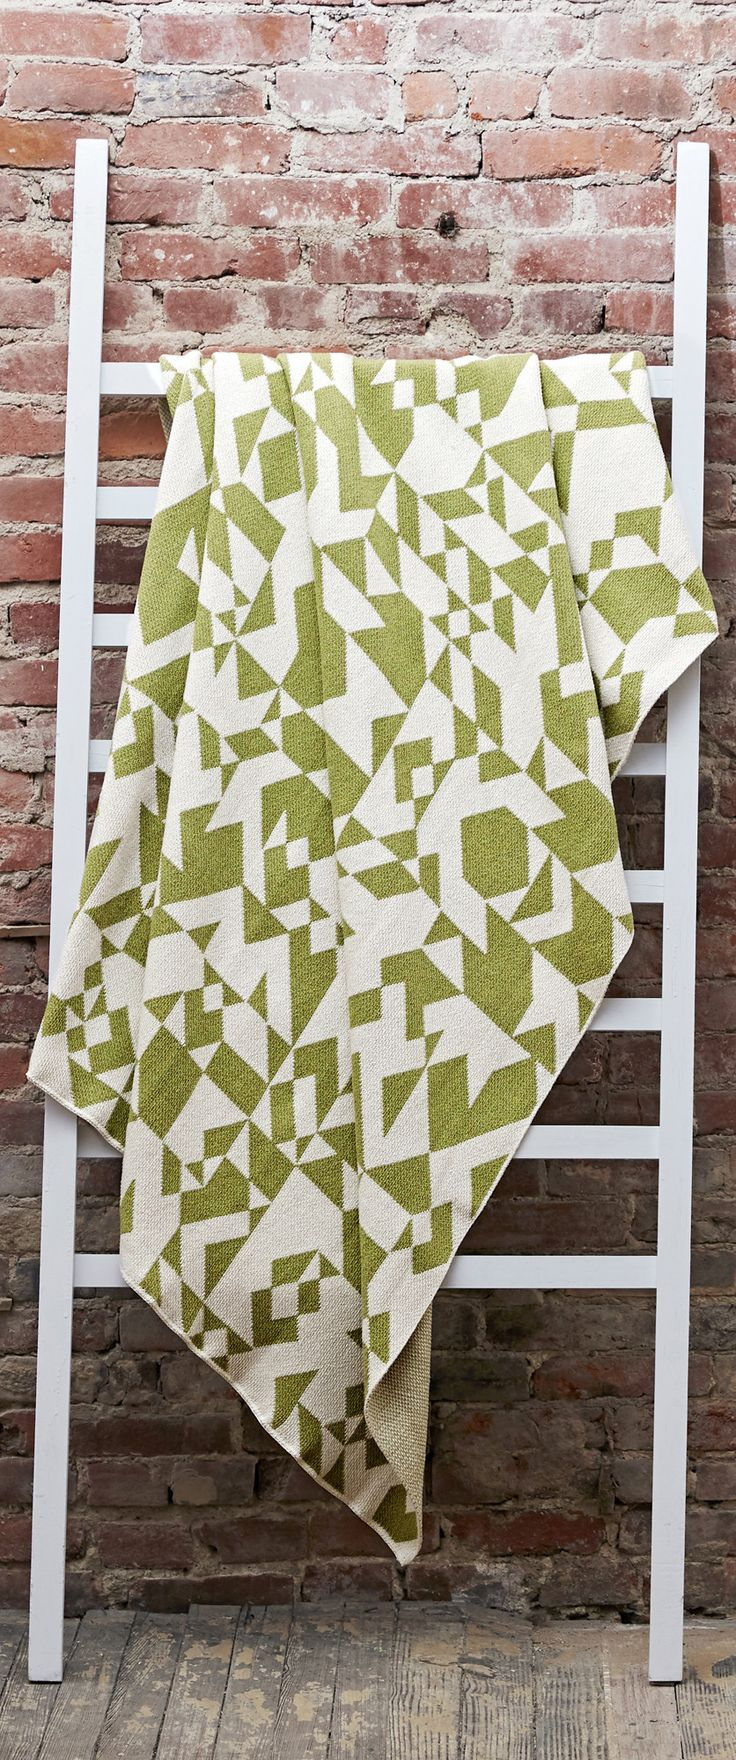 Shop Savannah Hayes. Modern, graphic throw blankets that are perfect for the couch or the bed. Their bold, geometric patterns are statement home decor pieces.